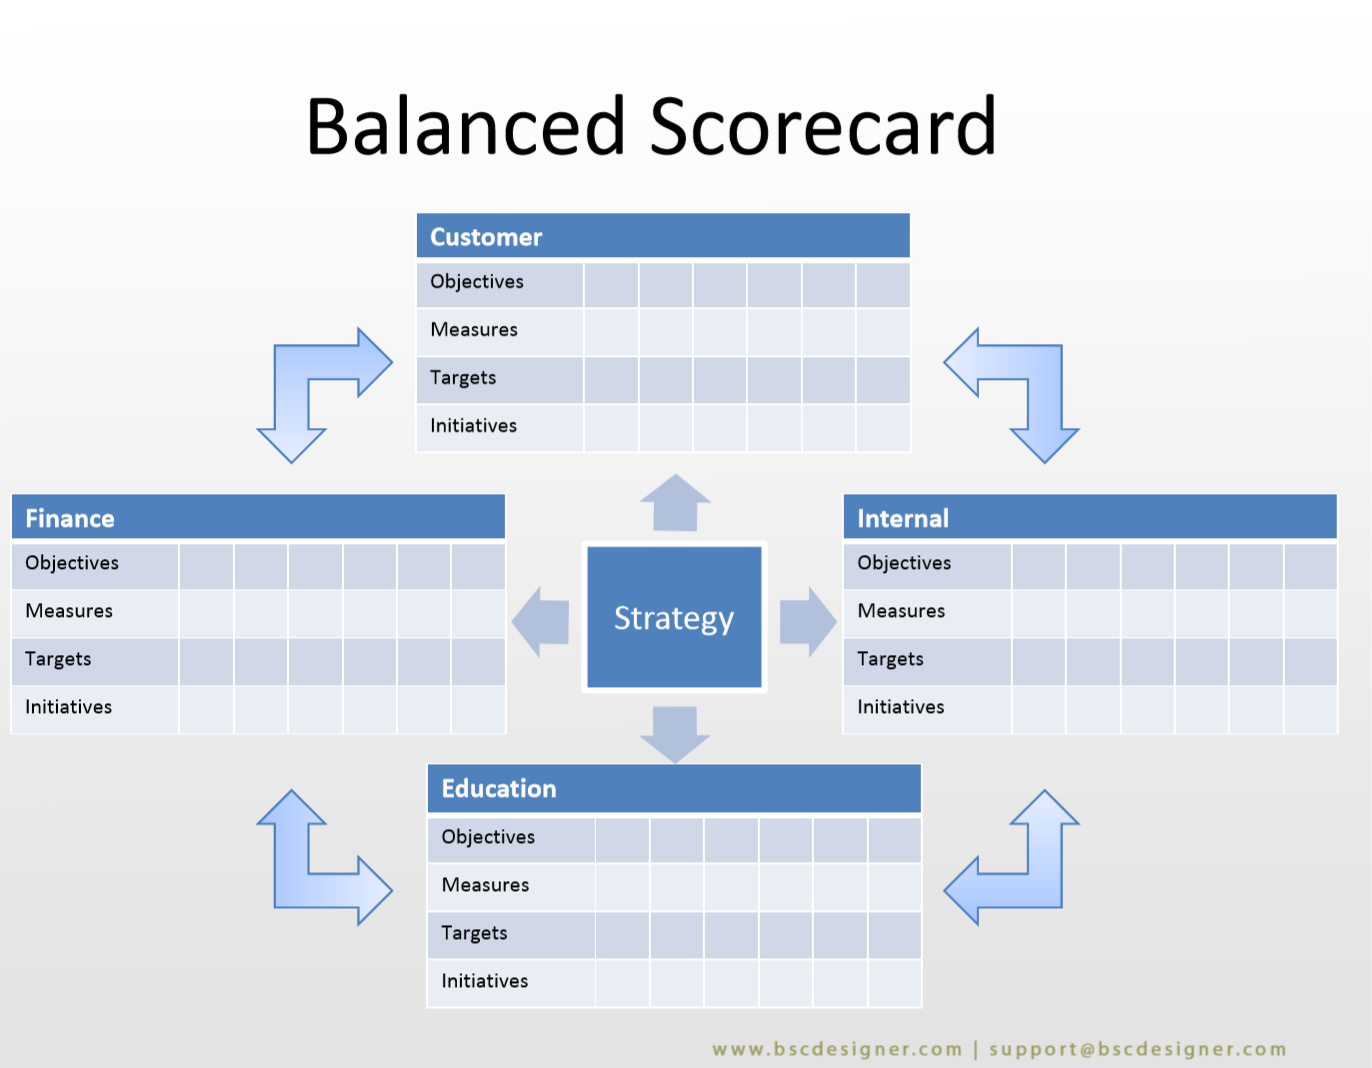 19 Balanced Scorecard Examples with KPIs